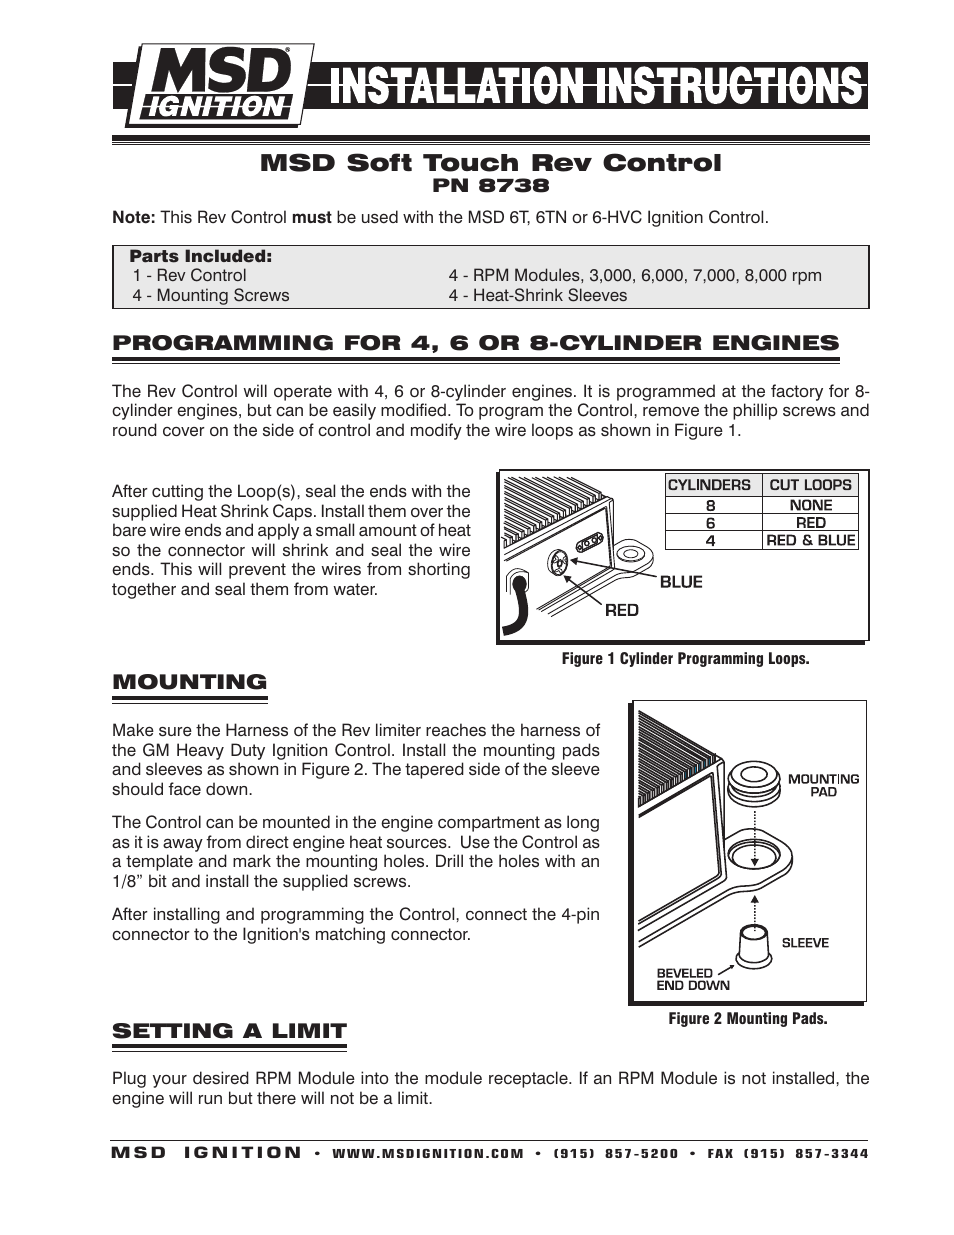 Msd 8738 Soft Touch Rev Control For Use With Msd 6t Installation User Manual